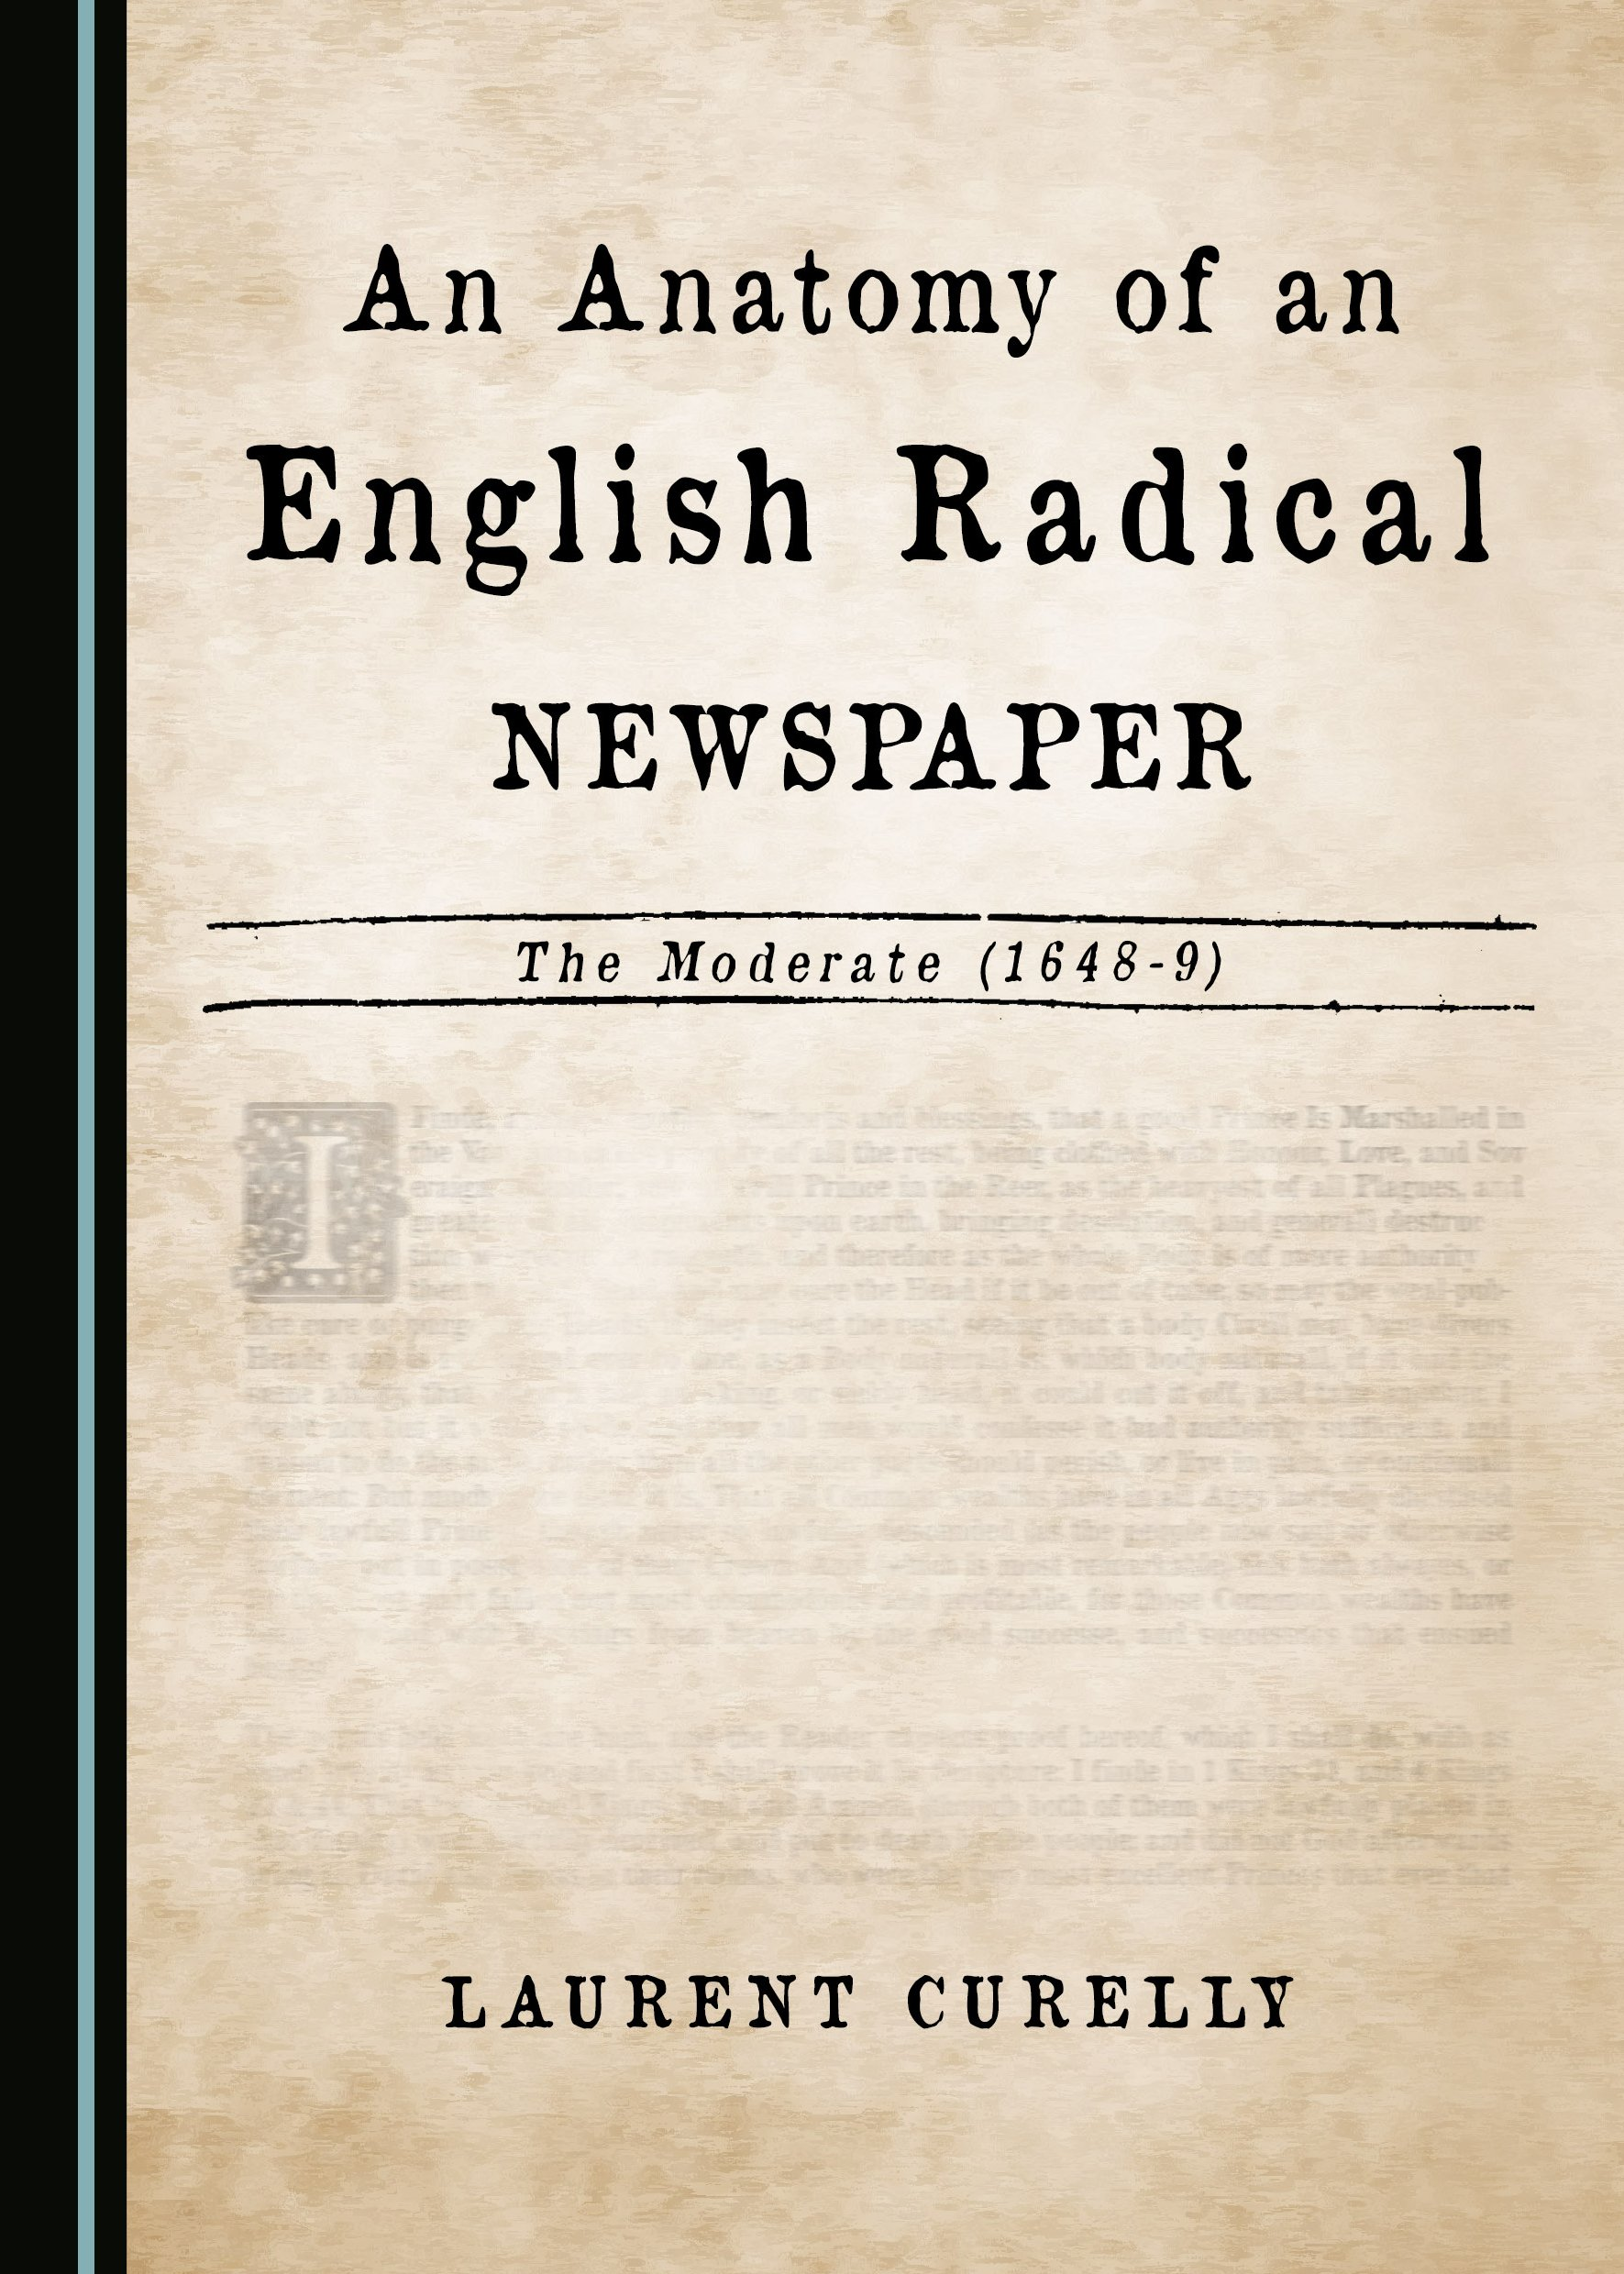 An Anatomy of an English Radical Newspaper: The Moderate (1648-9)